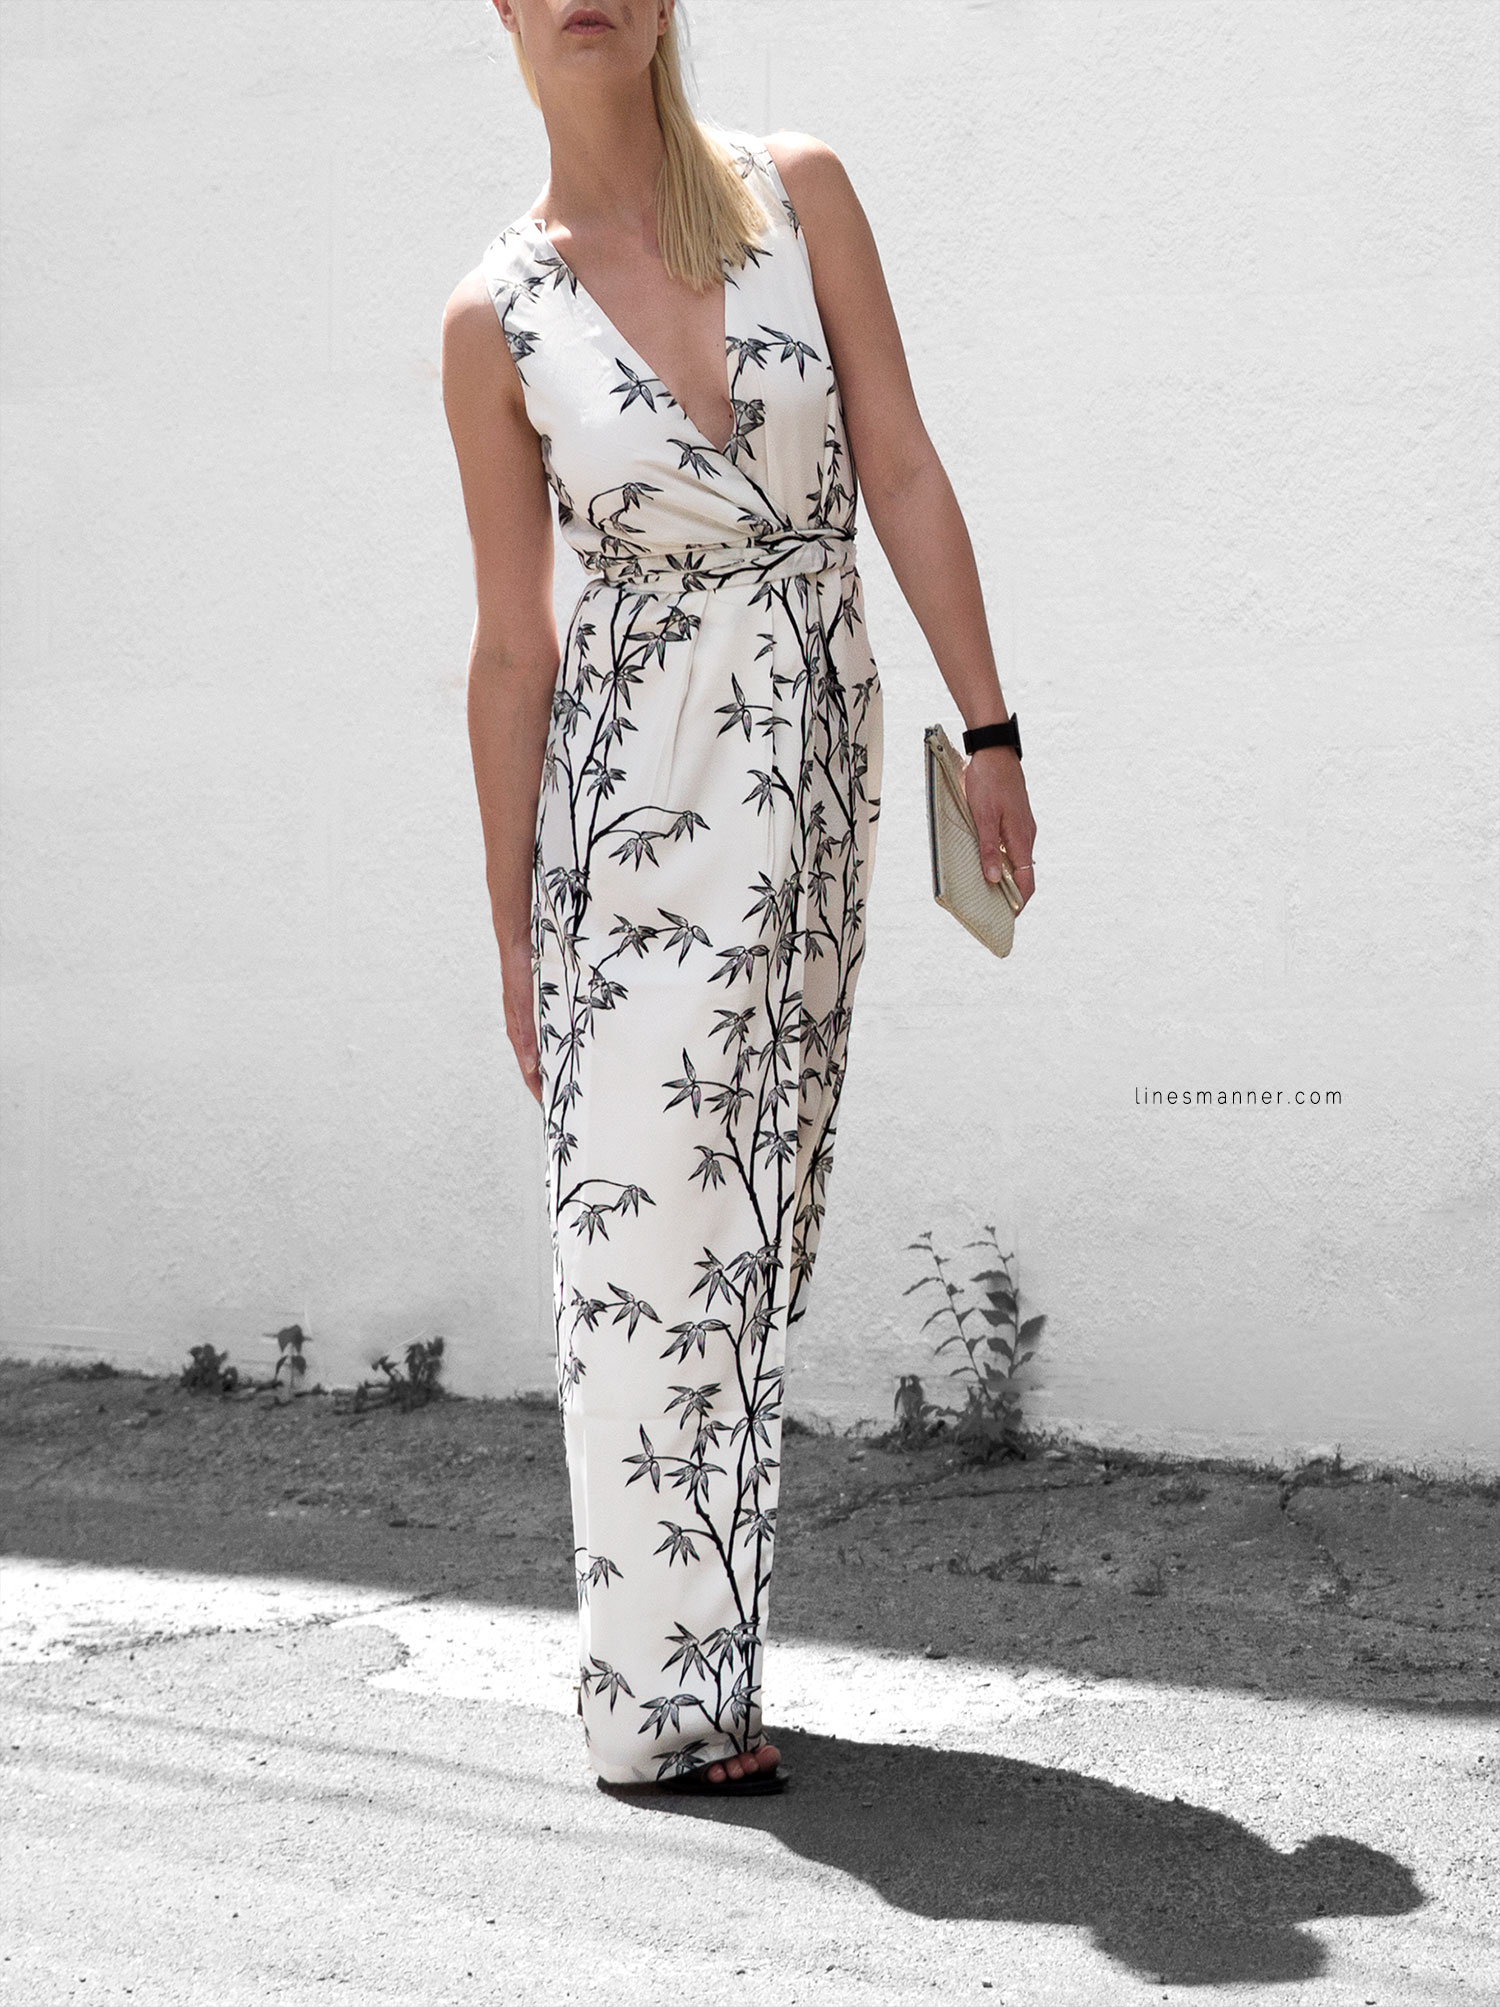 Lines-Manner-Minimal-Simplicity-Essentials-Bon_Label-Neon_Rose_Print-Bamboo-Slit_Dress-Wrap_Dress-Maxi_Dress-Fesh-Black_and_White-Casual-Elegant-Bright-Monochrome-18